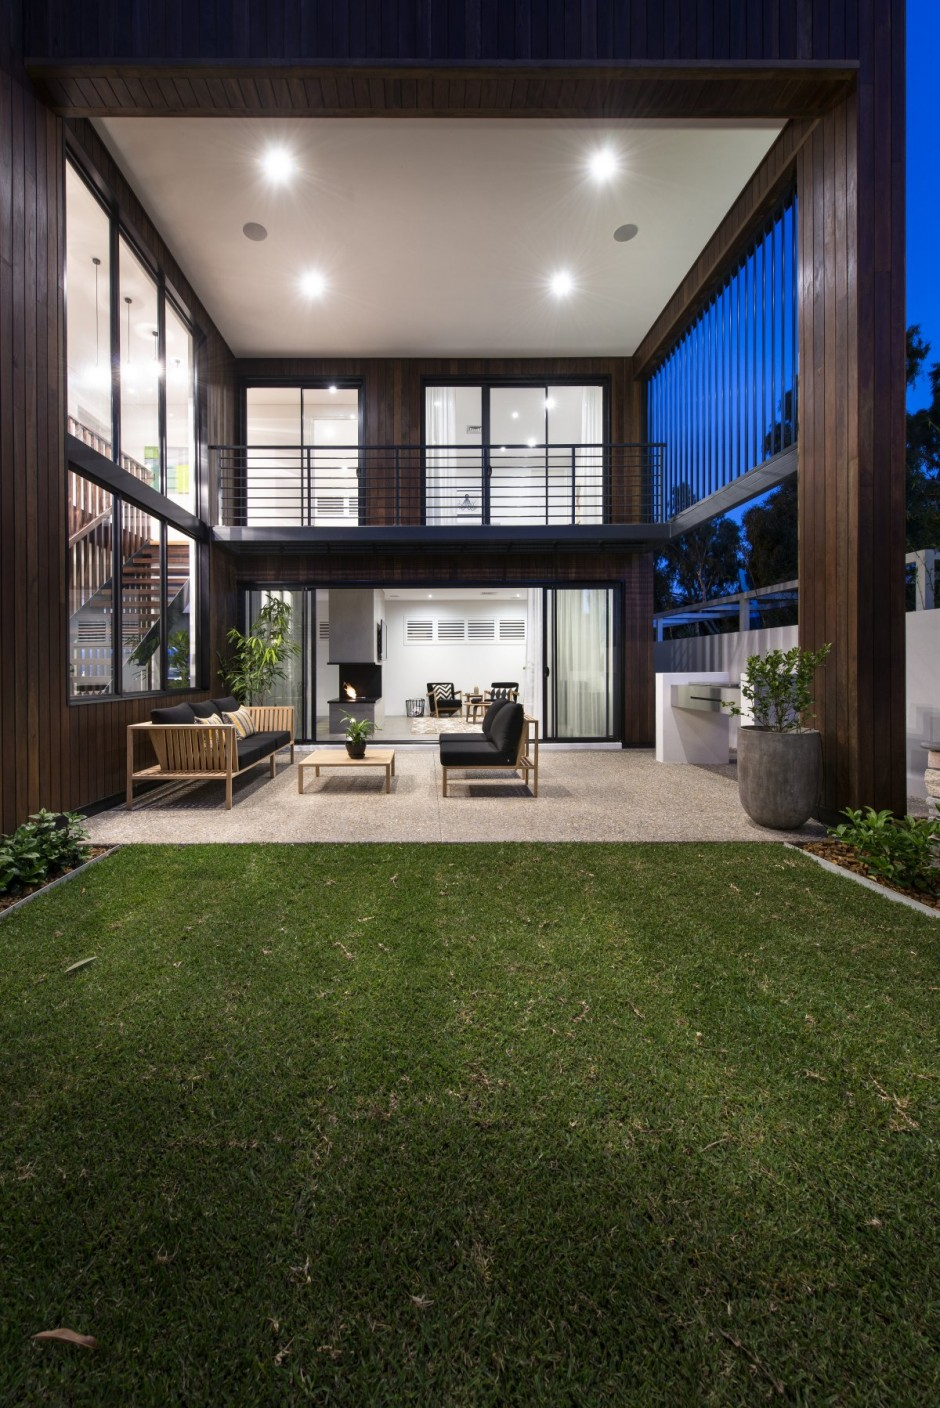 Outdoor Living Room With Green Couryard Design Modern House Design In Perth